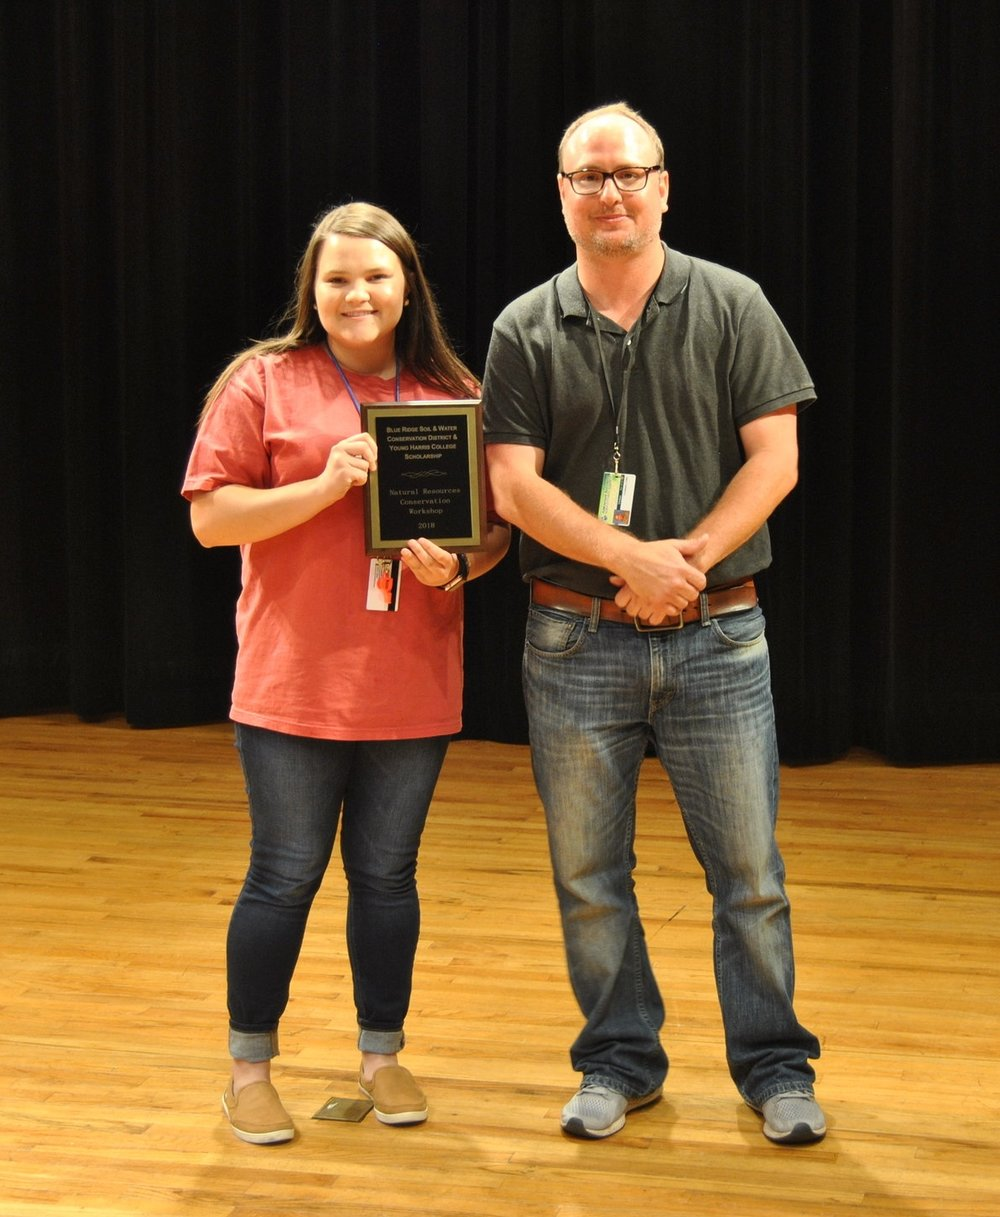 The winner of Blue Ridge Mountain Soil & Water Conservation Districts $1200 scholarship was Emily Owenby! Emily resides in Blairsville, GA and is an upcoming senior at Union County High School! Pictured with Emily is NRCW Director, Luke Crosson.